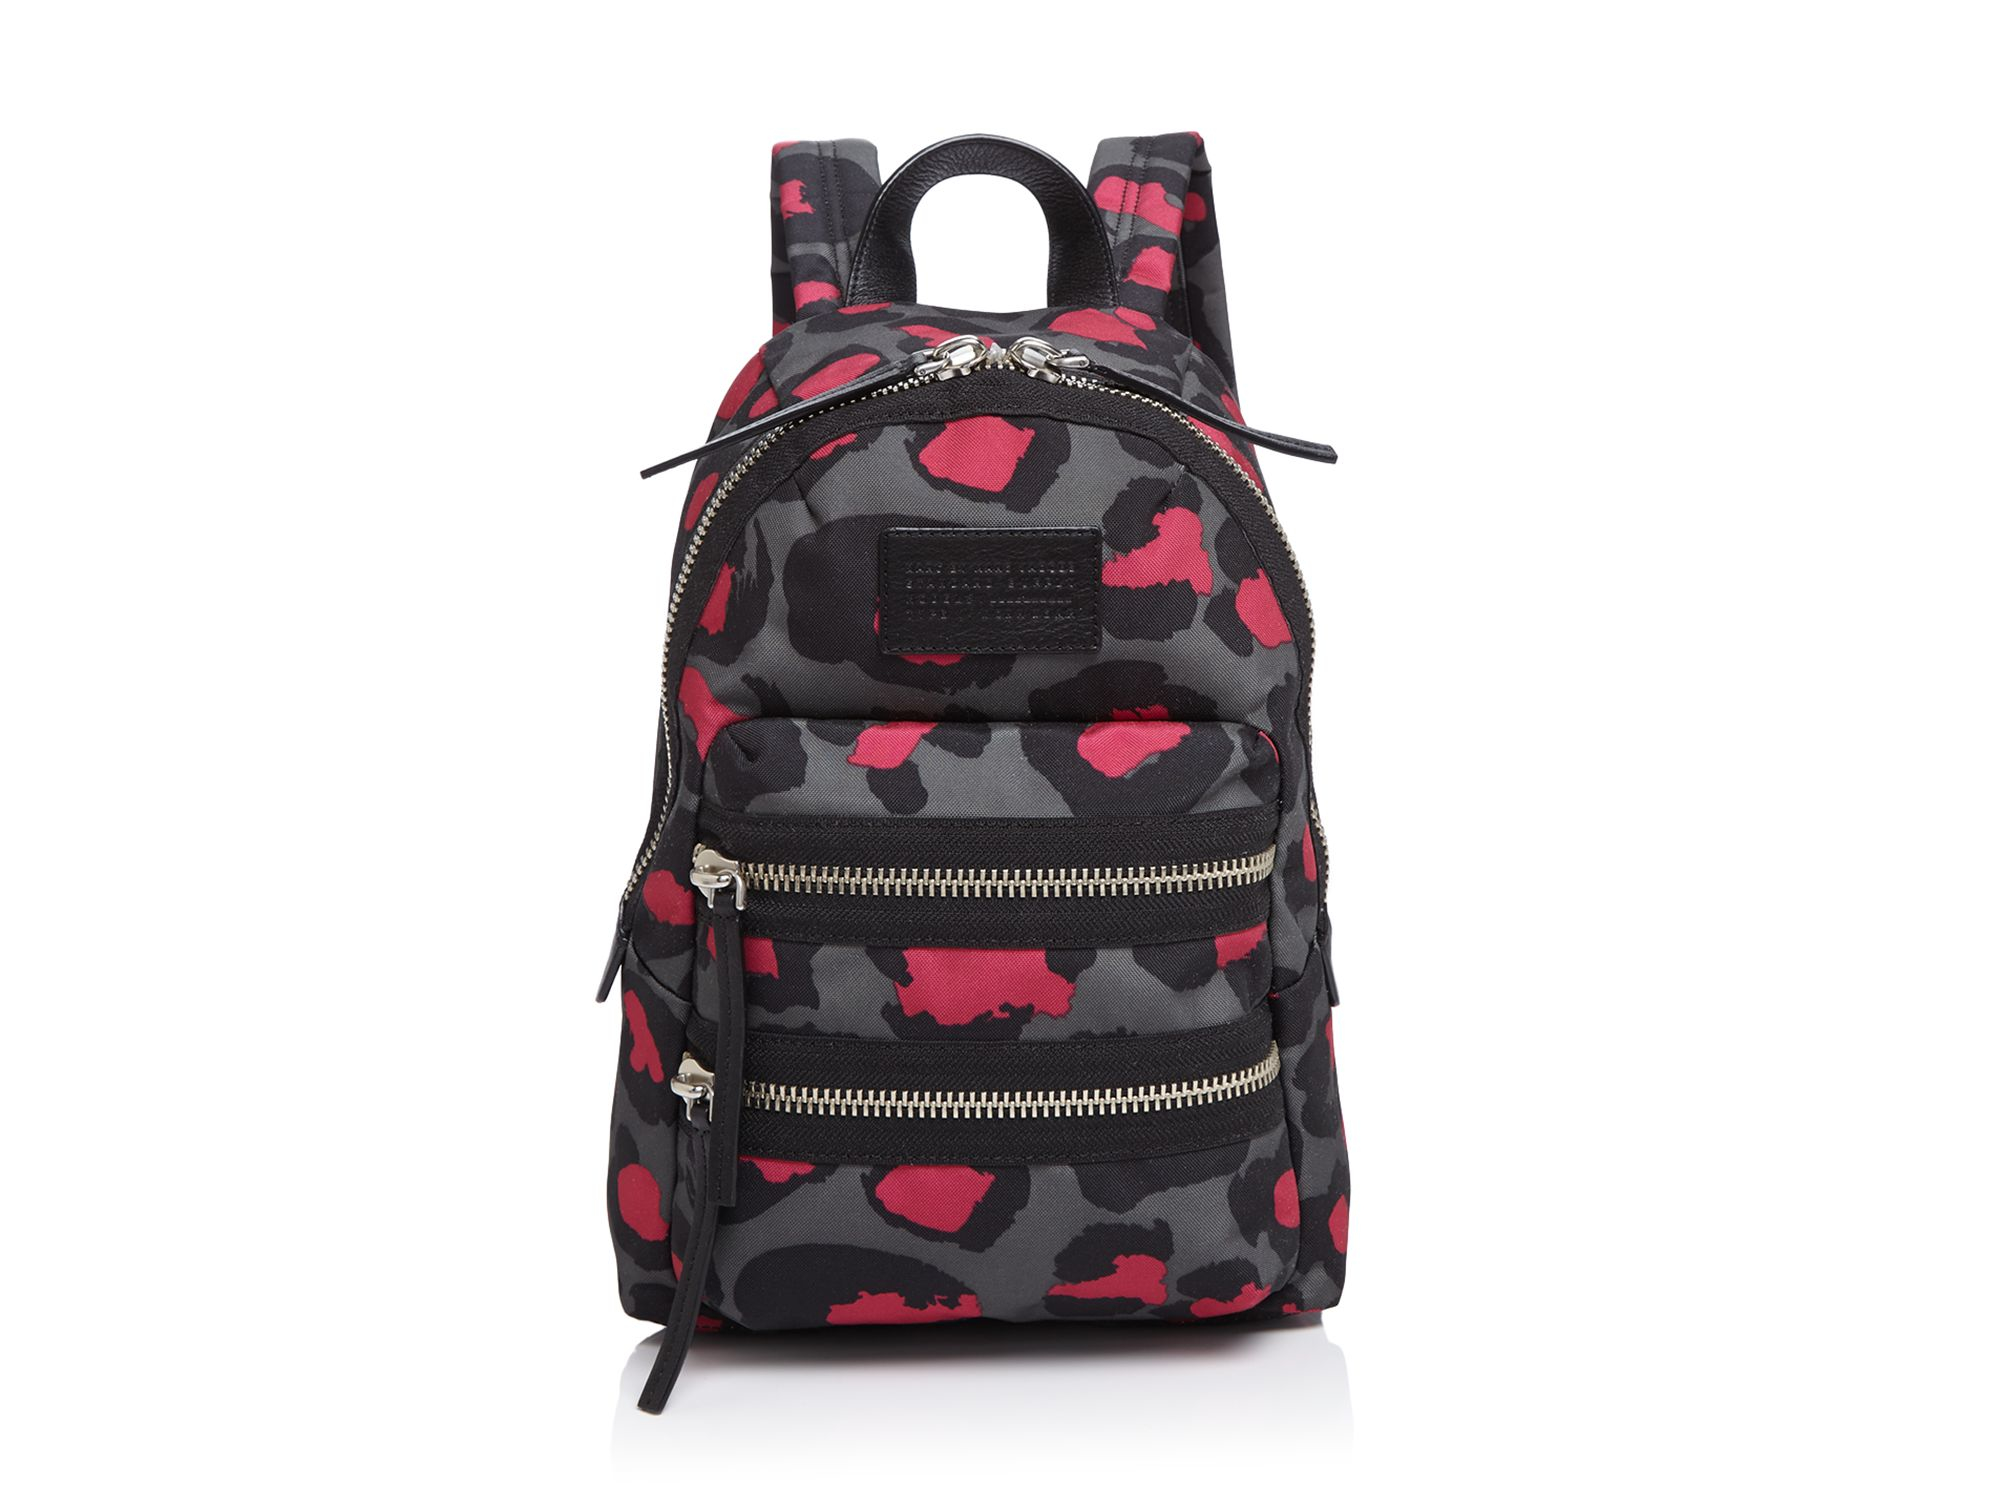 Pink Leopard Print Backpack - Best Leopard 2017